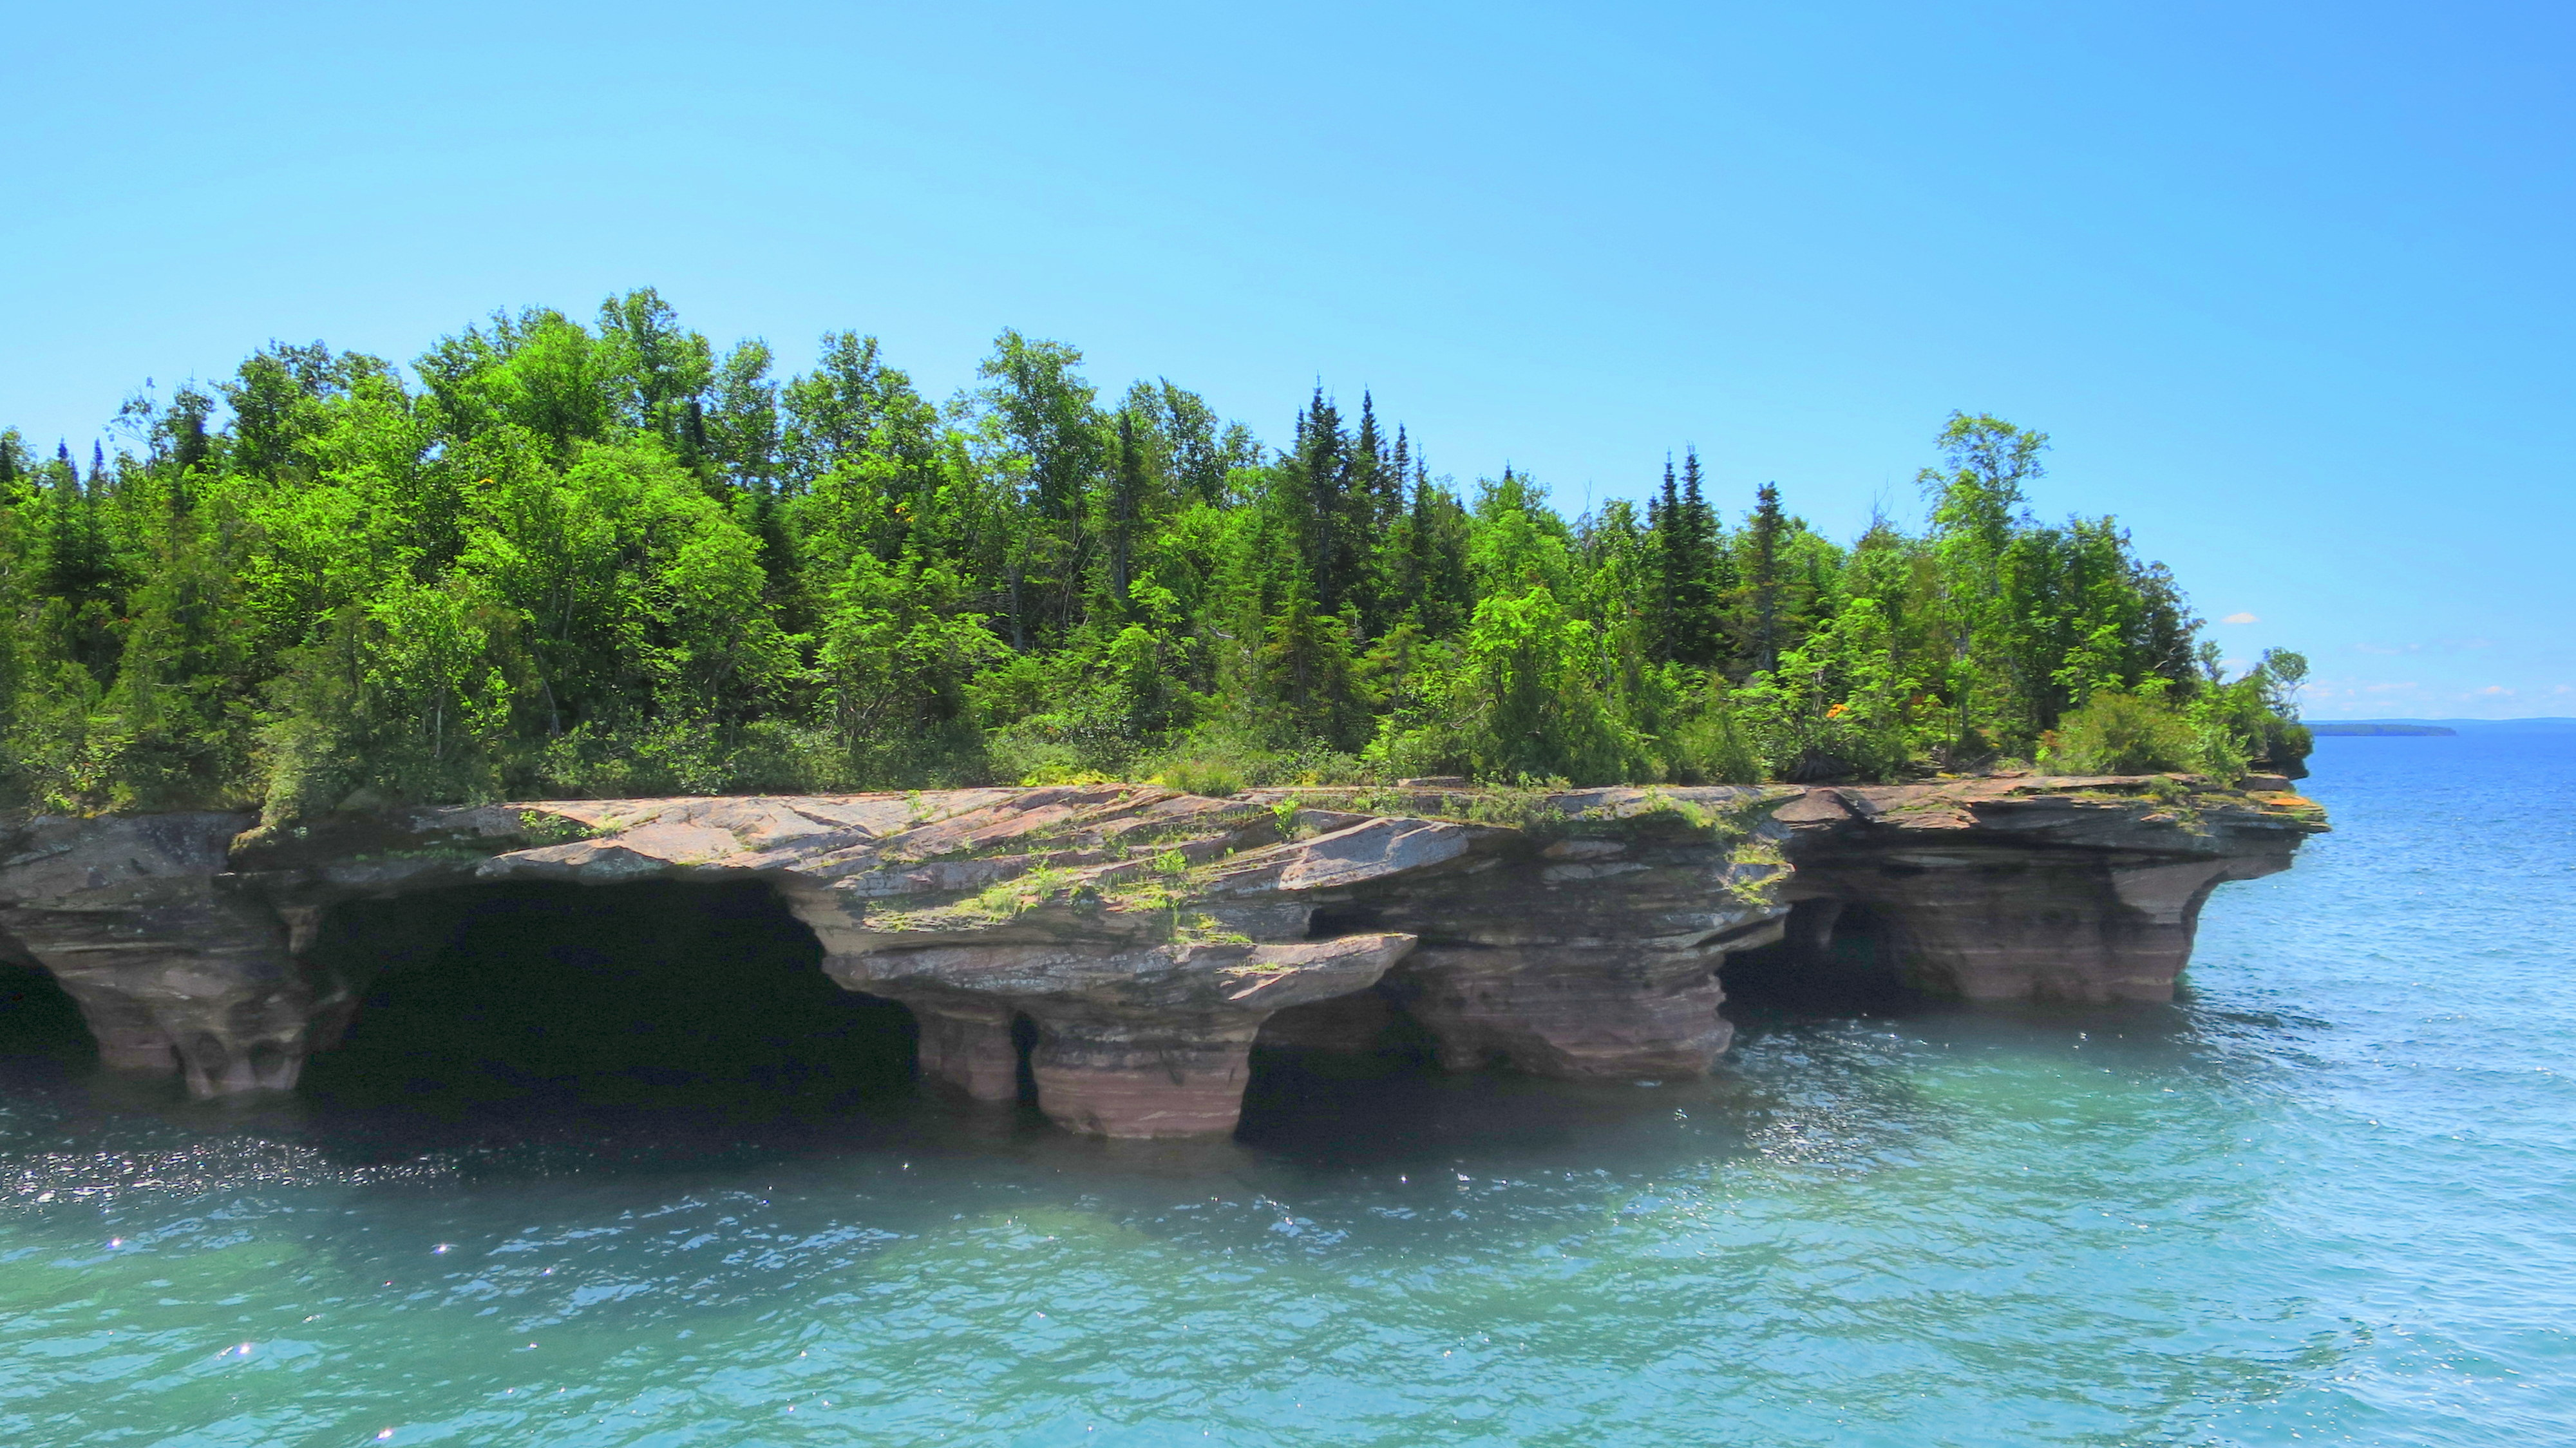 Photos: Kayaking the Pictures of apostle islands